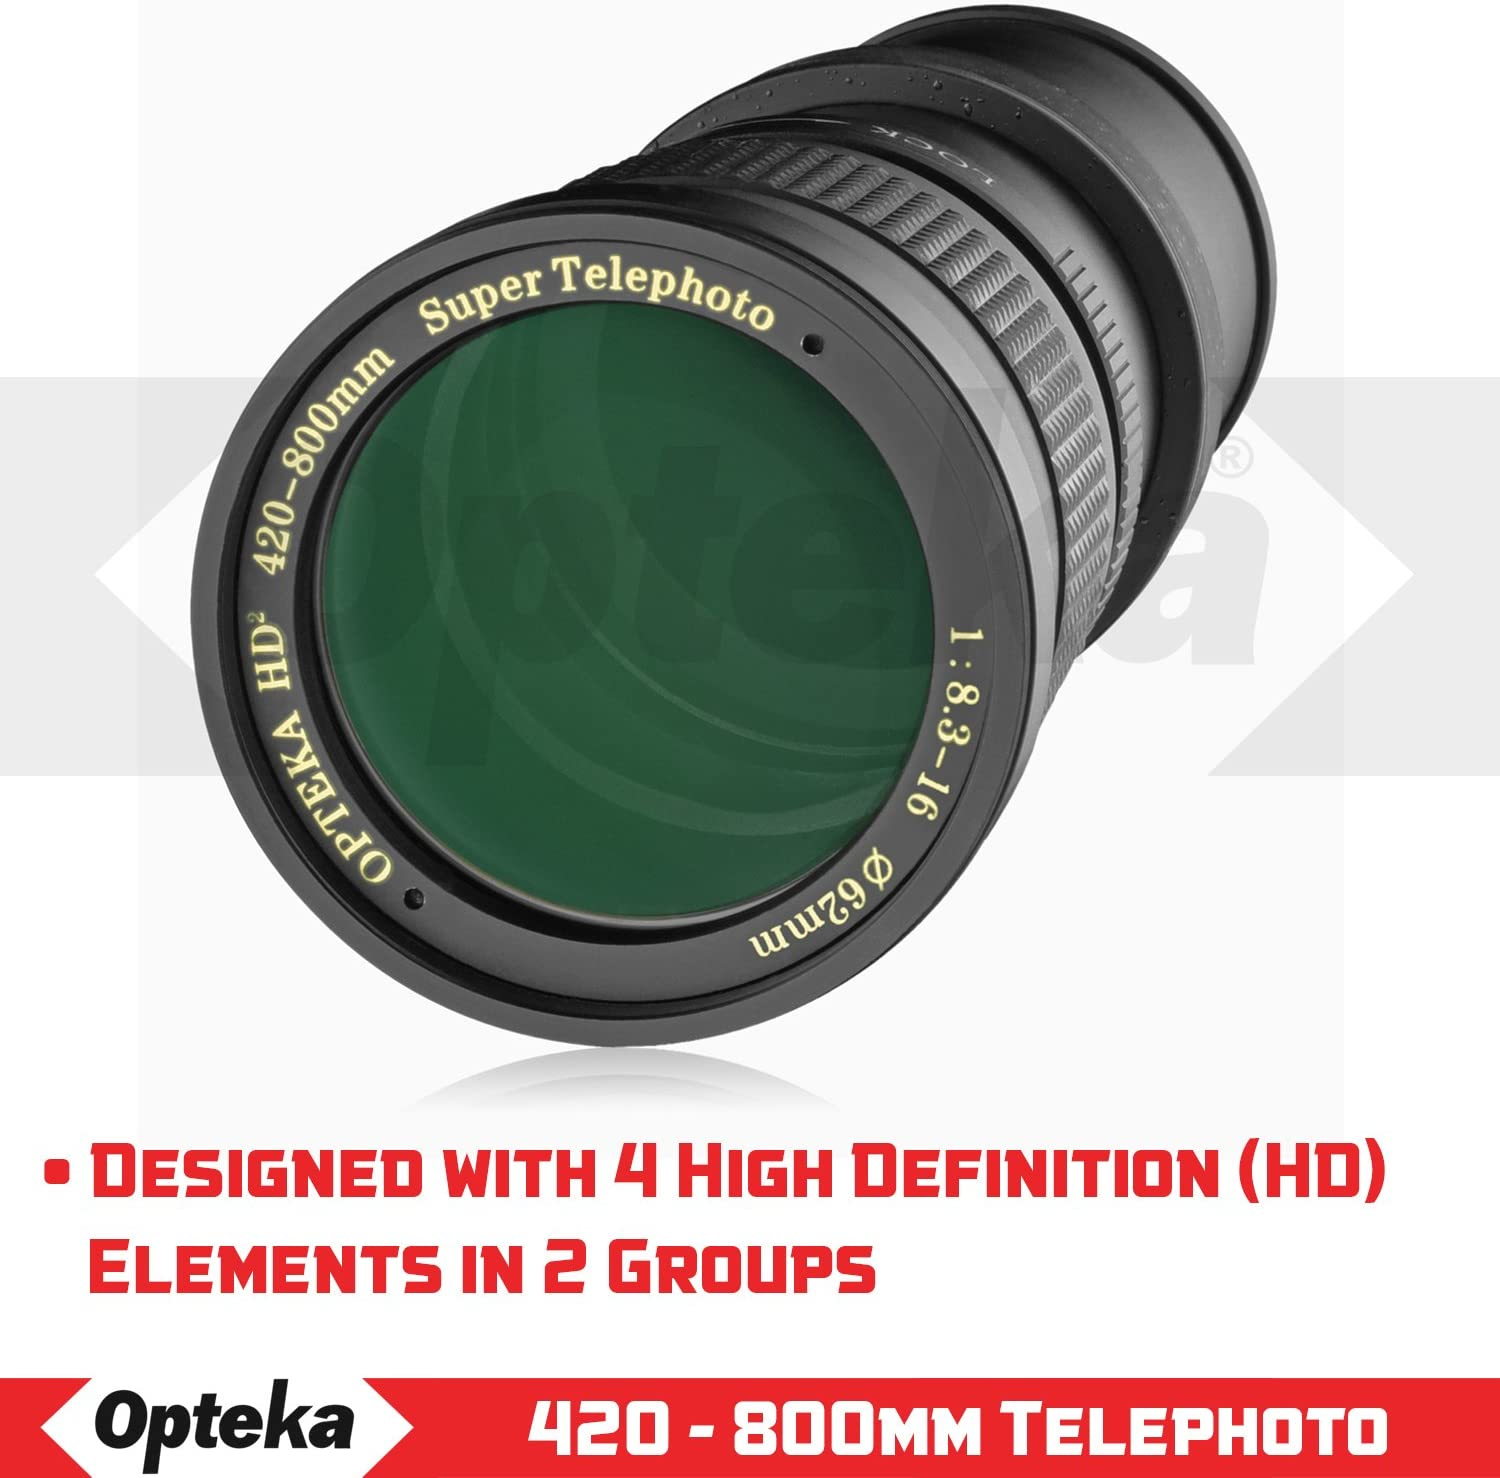 A580 w// 2X- 840-1600mm A55 A58 A33 A390 A550 A900 A68 A65 A290 DSLR Cameras A77 A37 A560 Opteka 420-800mm f//8.3 HD Telephoto Zoom Lens for Sony Alpha A-Mount A99 A57 A35 A700 A380